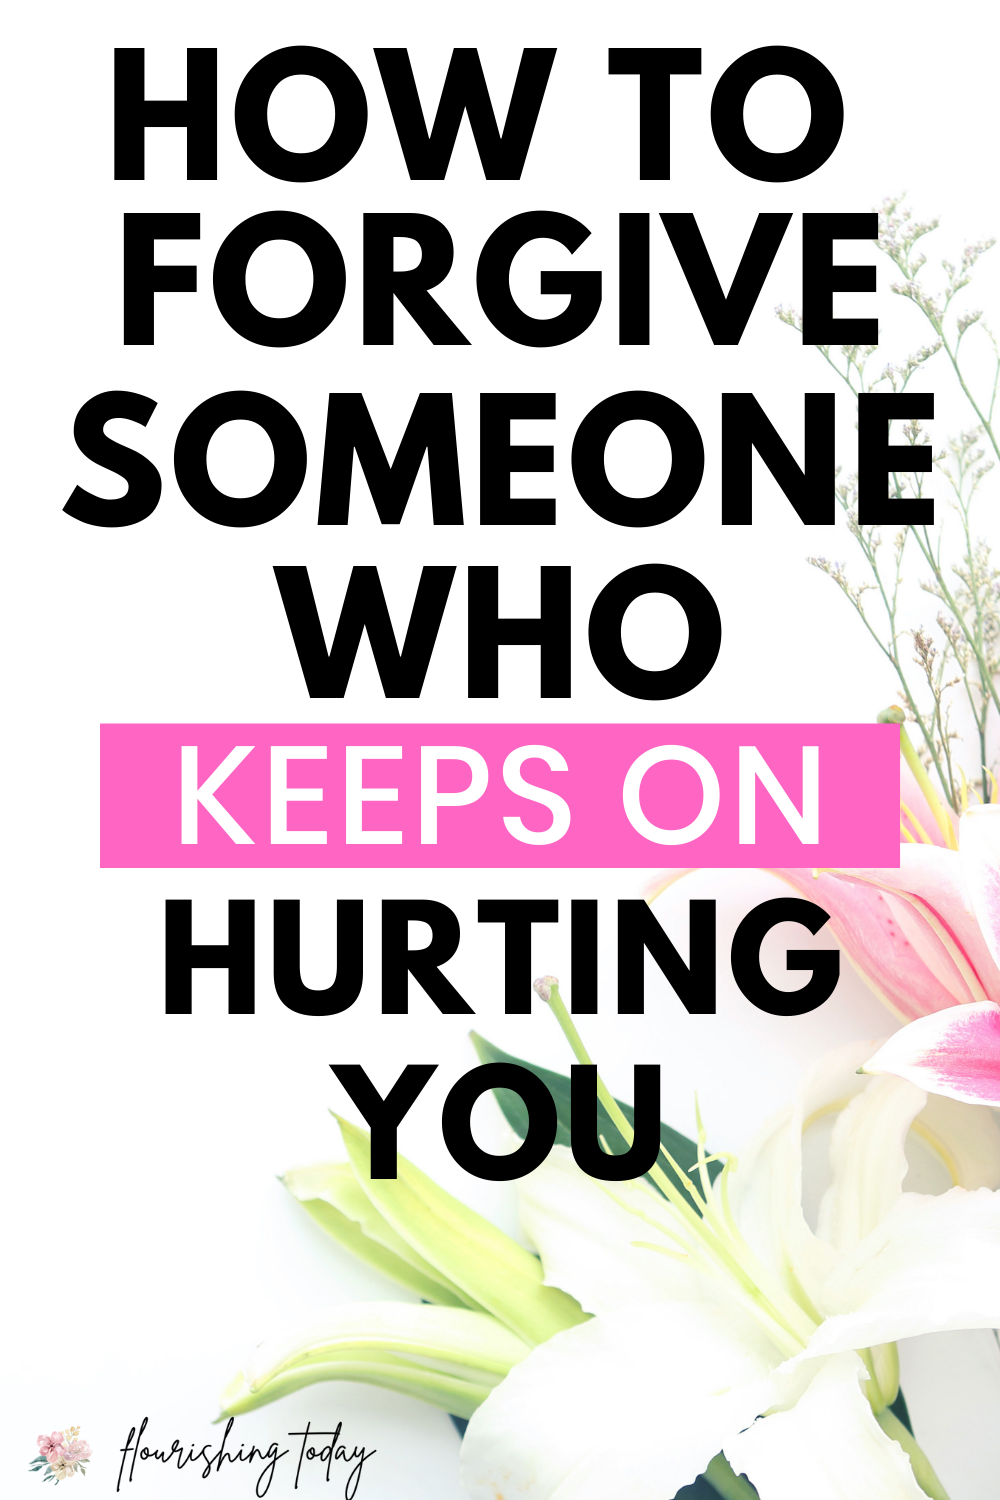 Are you having a hard time forgiving someone who has hurt you repeatedly? When it's hard to let go of relationship hurts, we can turn to the Bible for advice. Here are some biblical tips for how to forgive and move on. #relationshiptips #bible #forgiveness